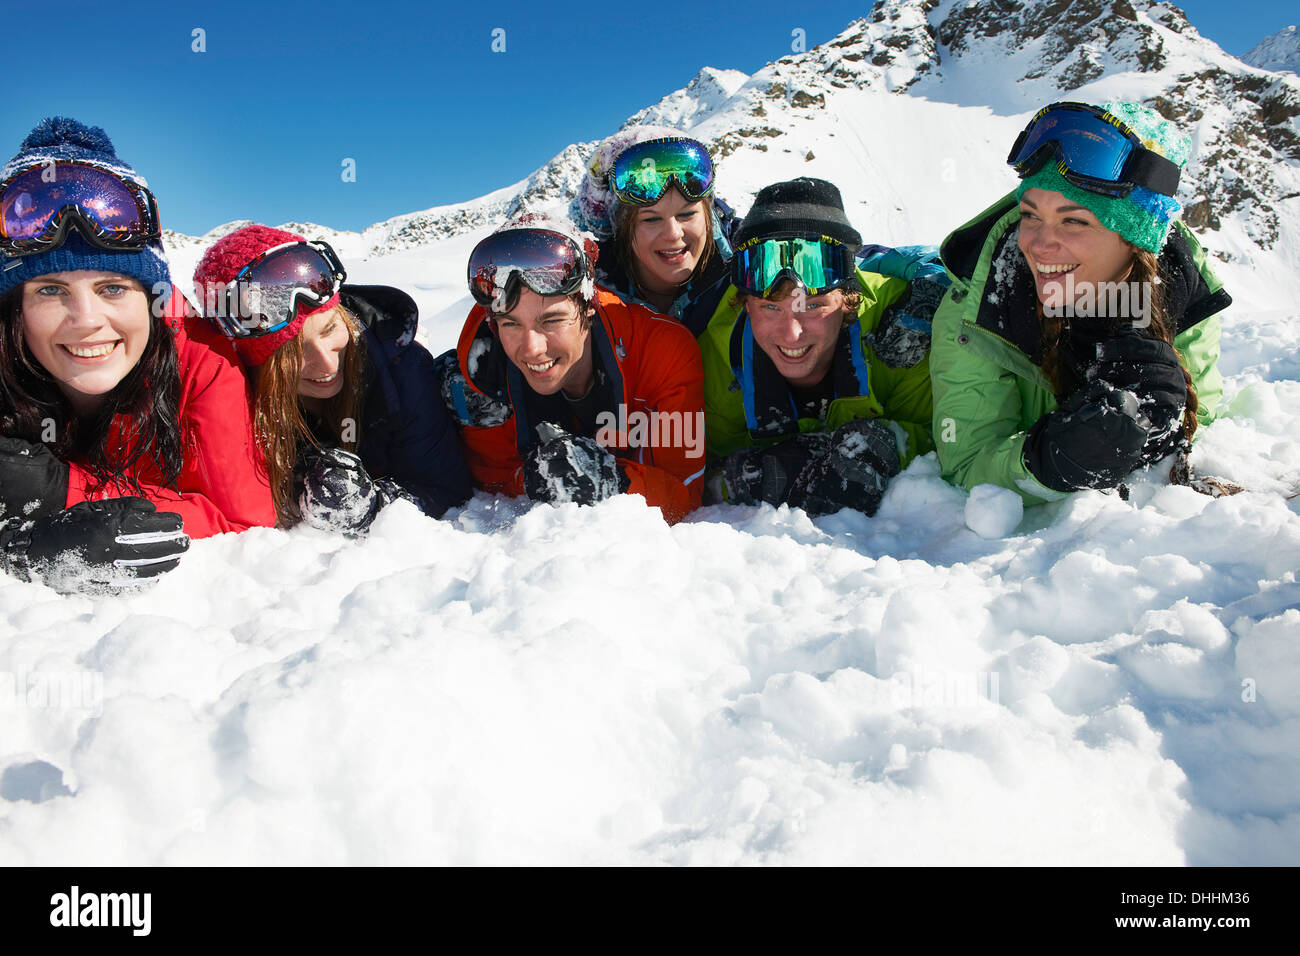 Friends lying on snow, Kuhtai, Austria - Stock Image